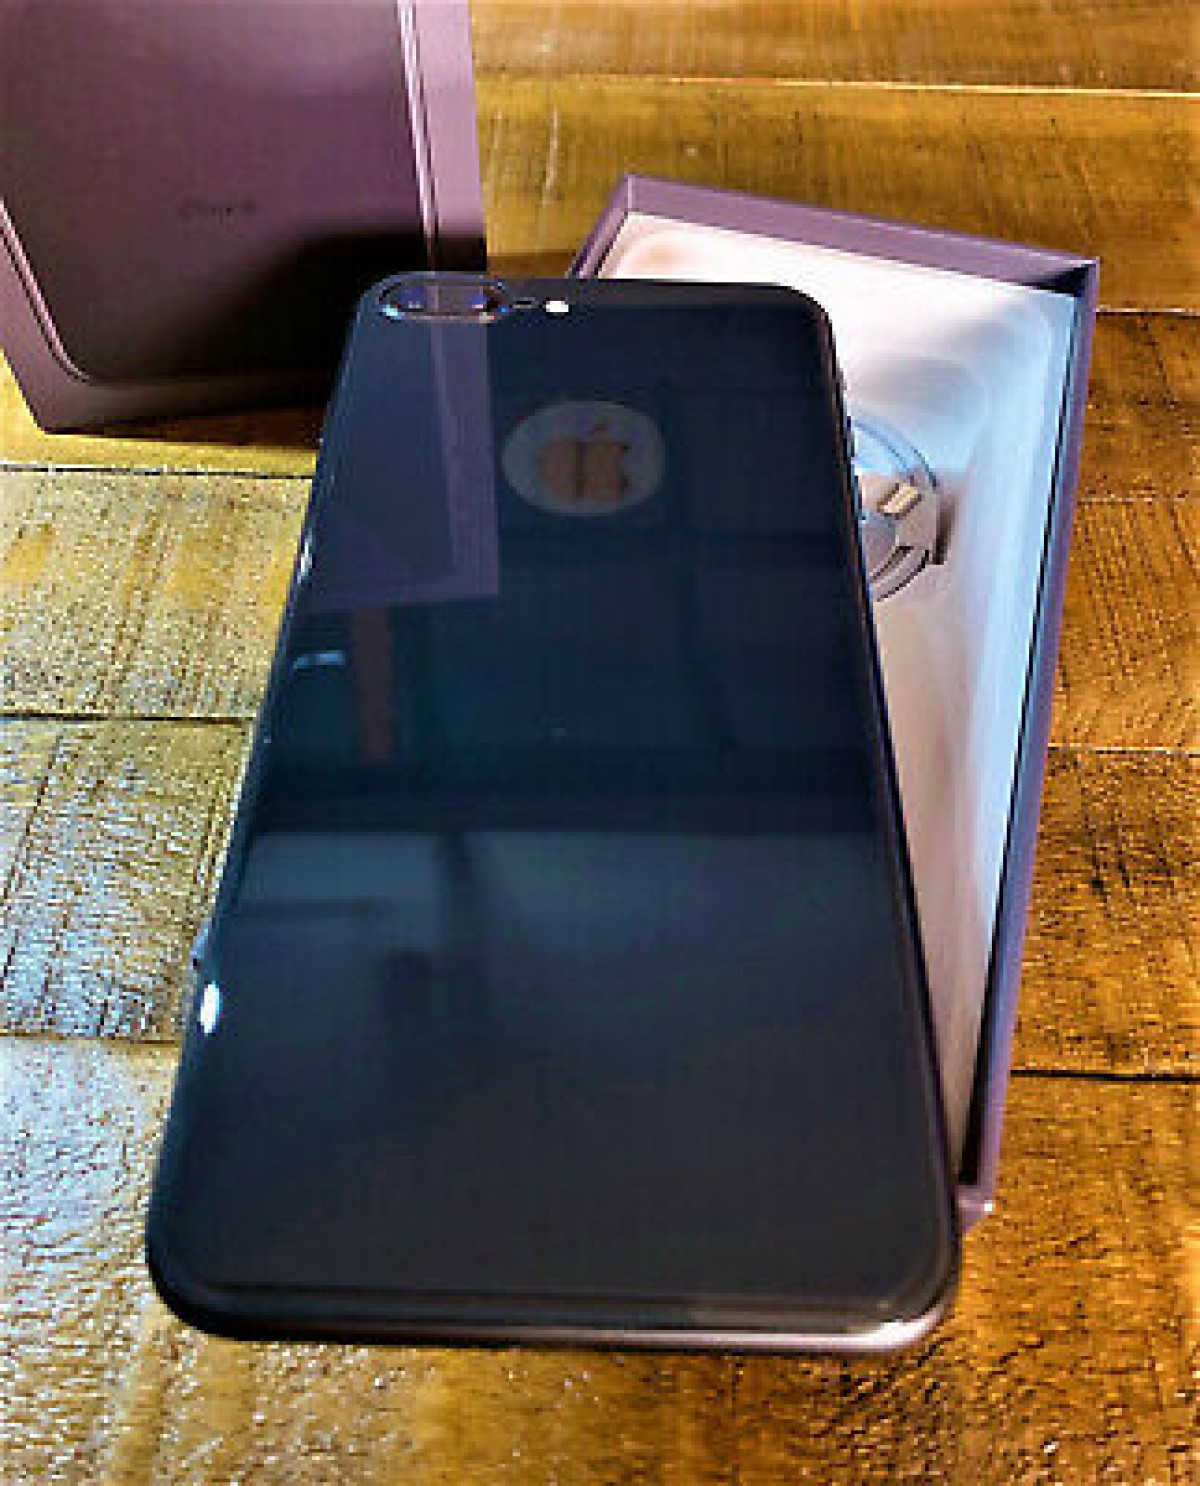 Renting Iphone: Apple Iphone 8plus 256gb For Sale In Kingston Kingston St